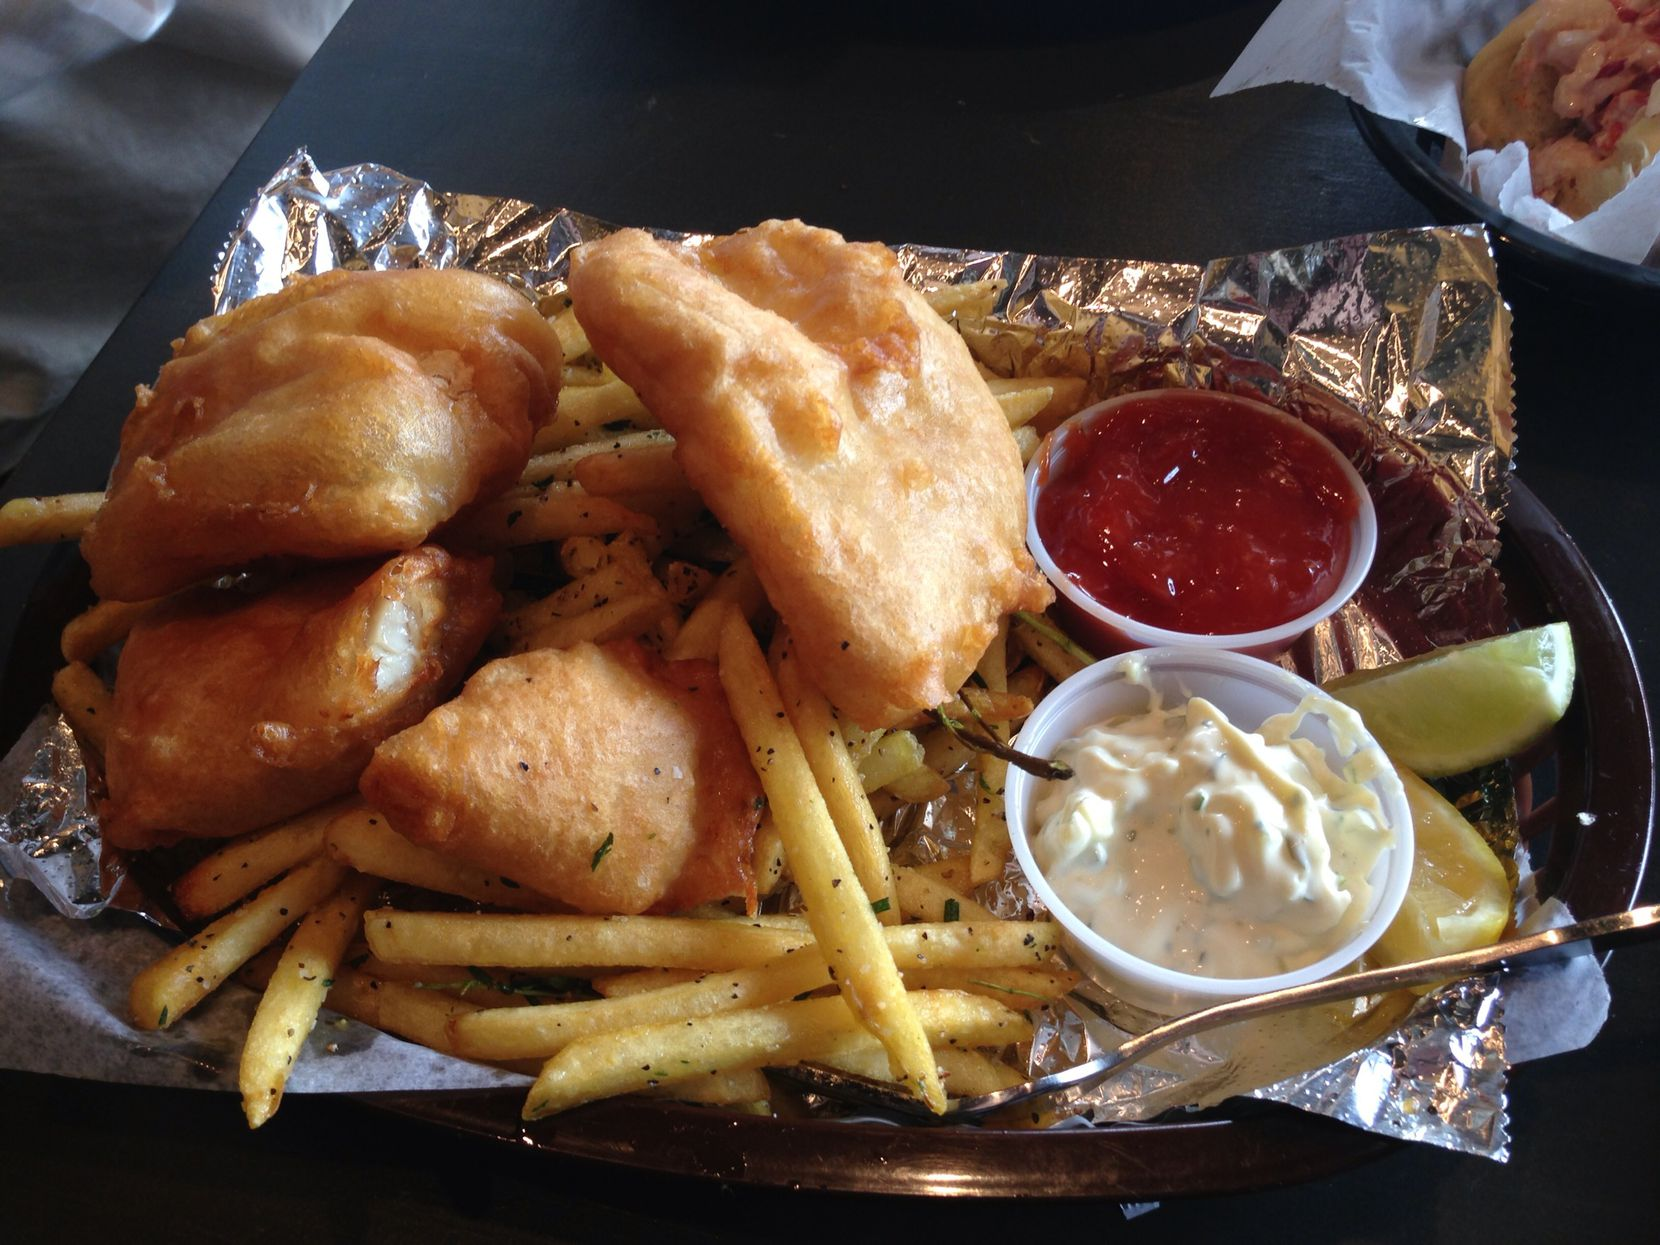 Competition can be tough for a table at 20 Feet Seafood Joint, Marc Cassel's East Dallas spot for fish 'n' chips and lobster rolls.